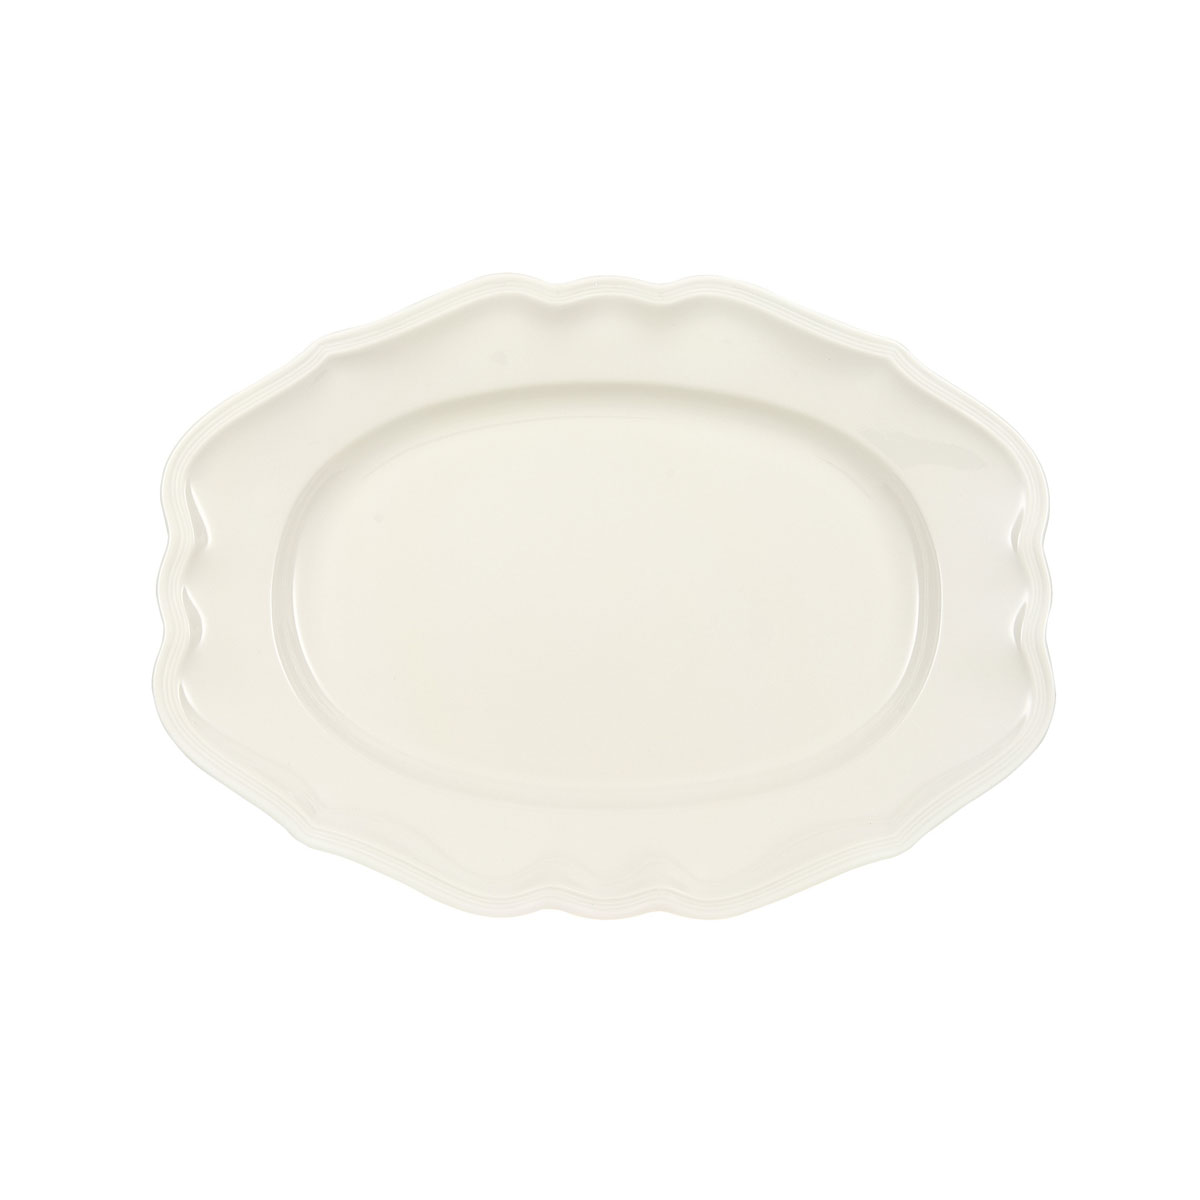 "Villeroy and Boch Manoir 14.5"" Oval Platter"